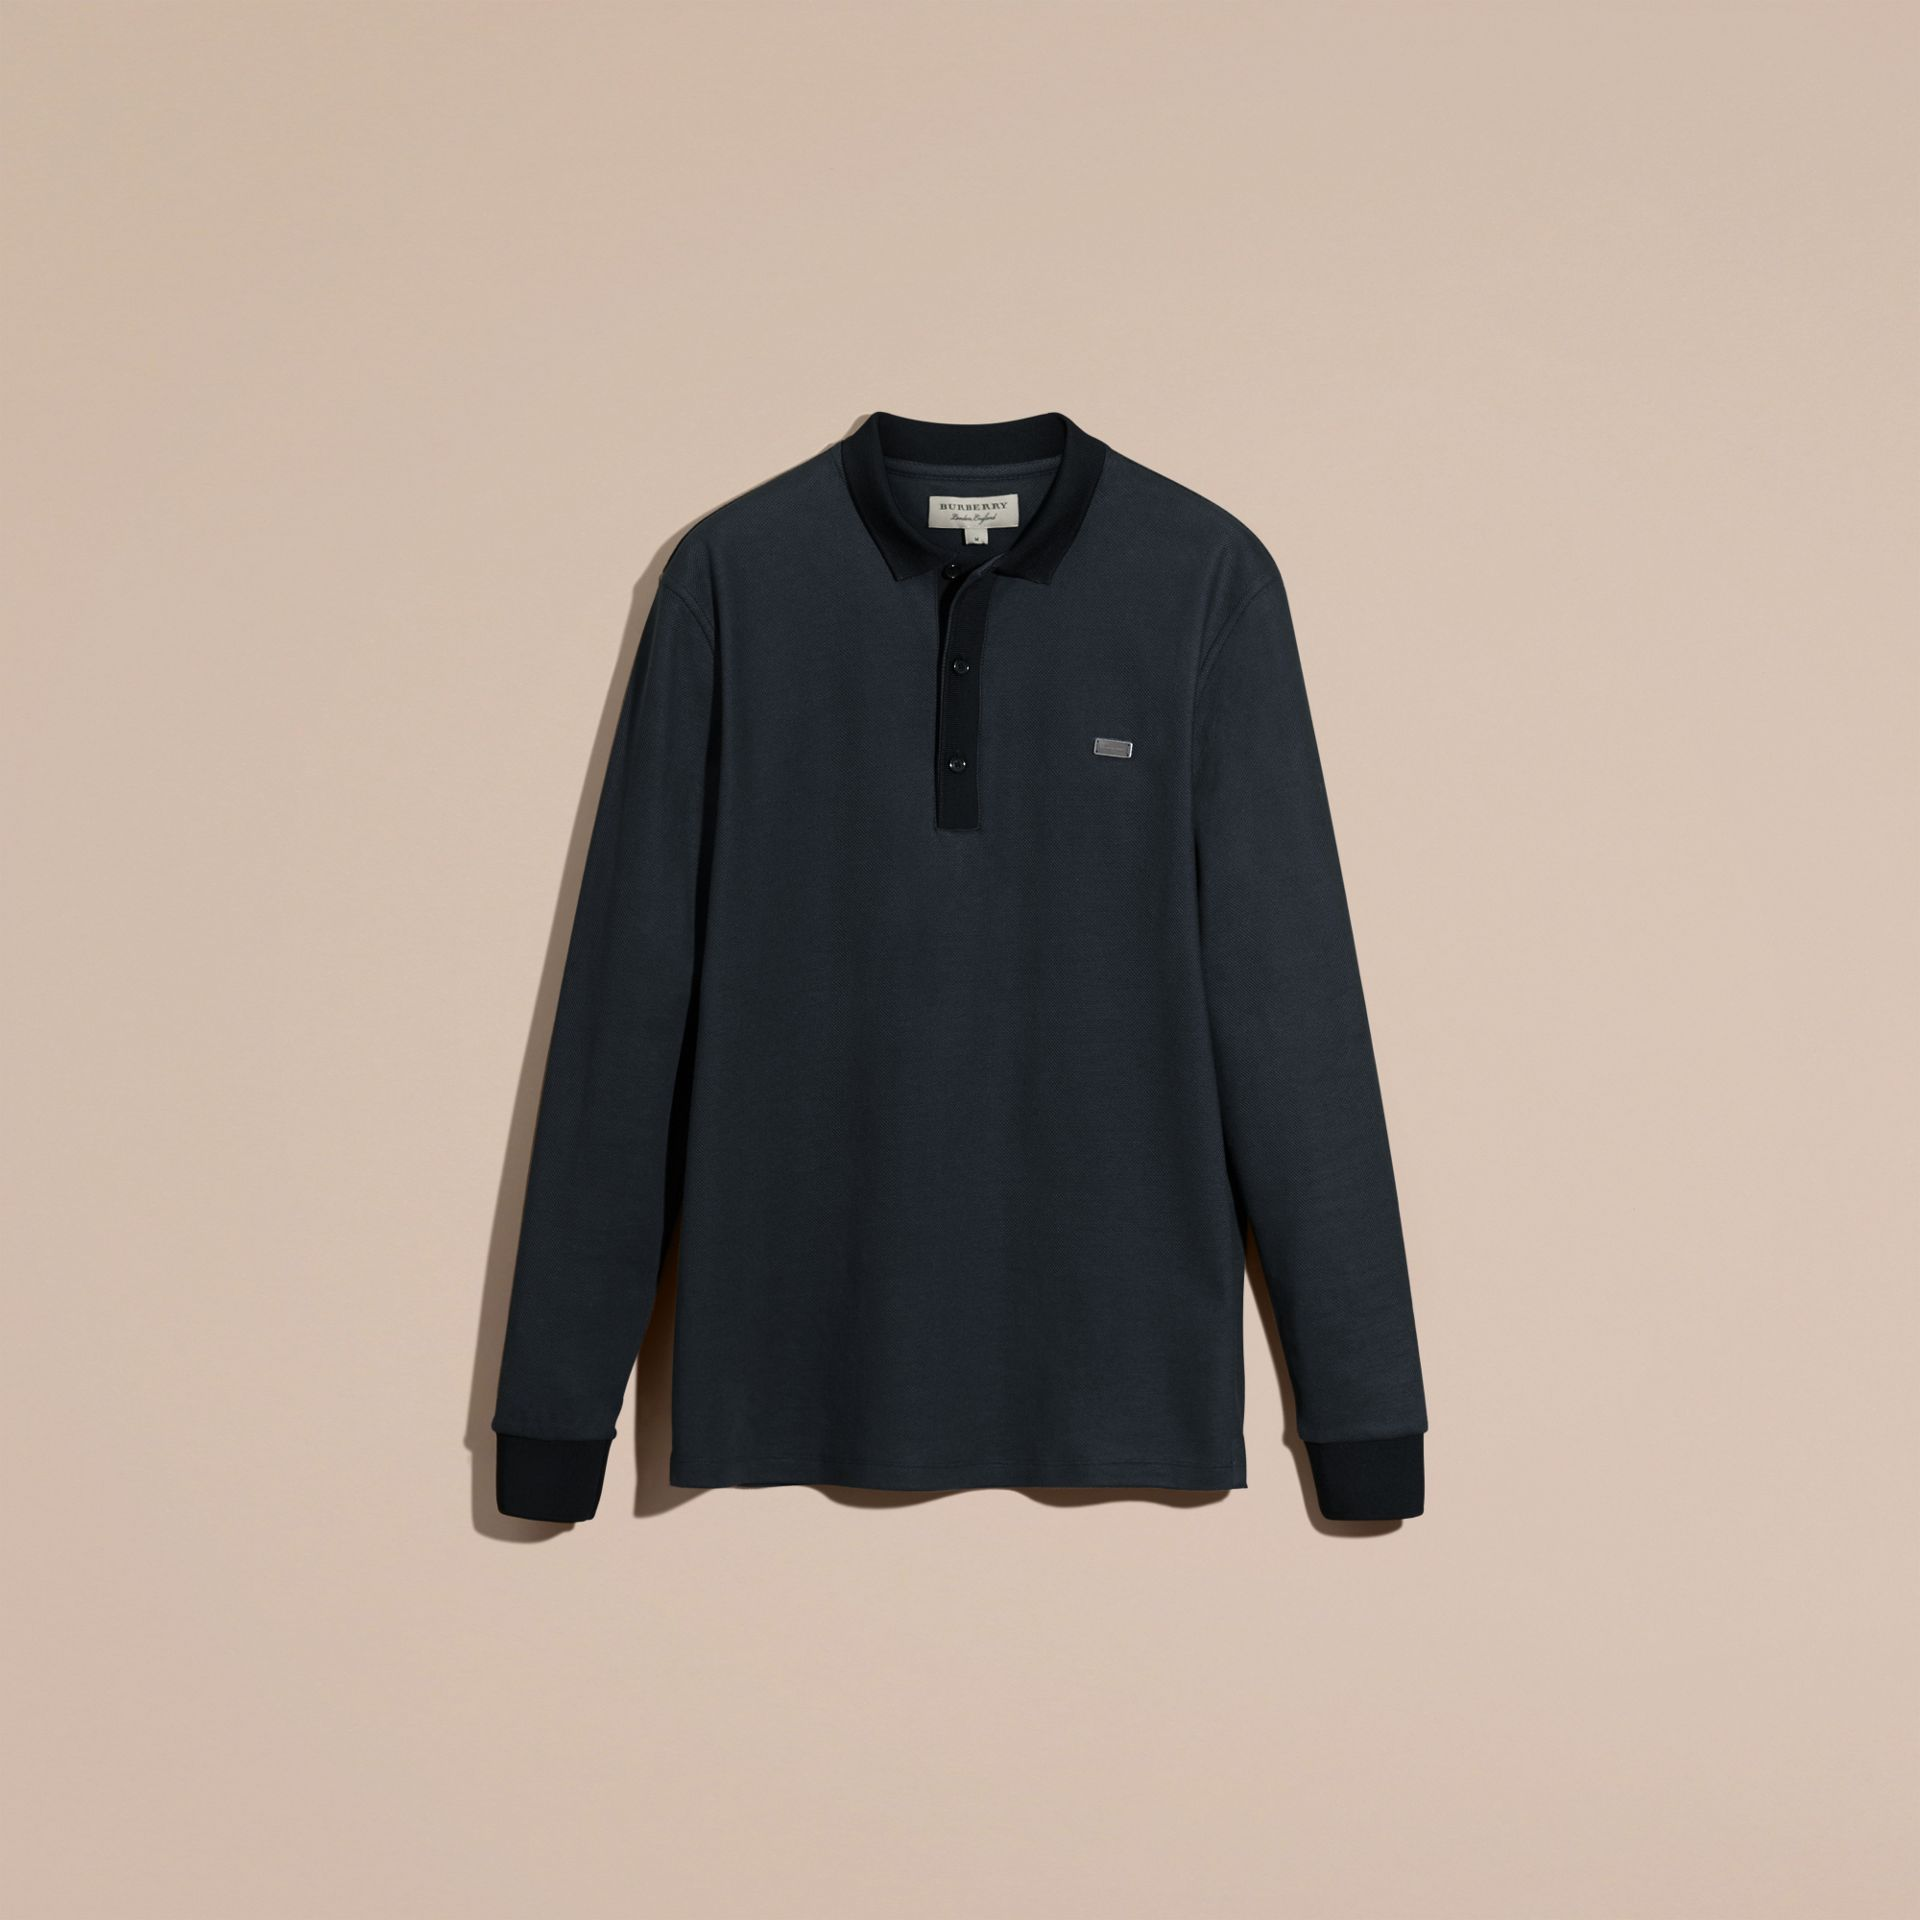 Storm blue/navy Long-sleeved Cotton Piqué Polo Shirt Storm Blue/navy - gallery image 4